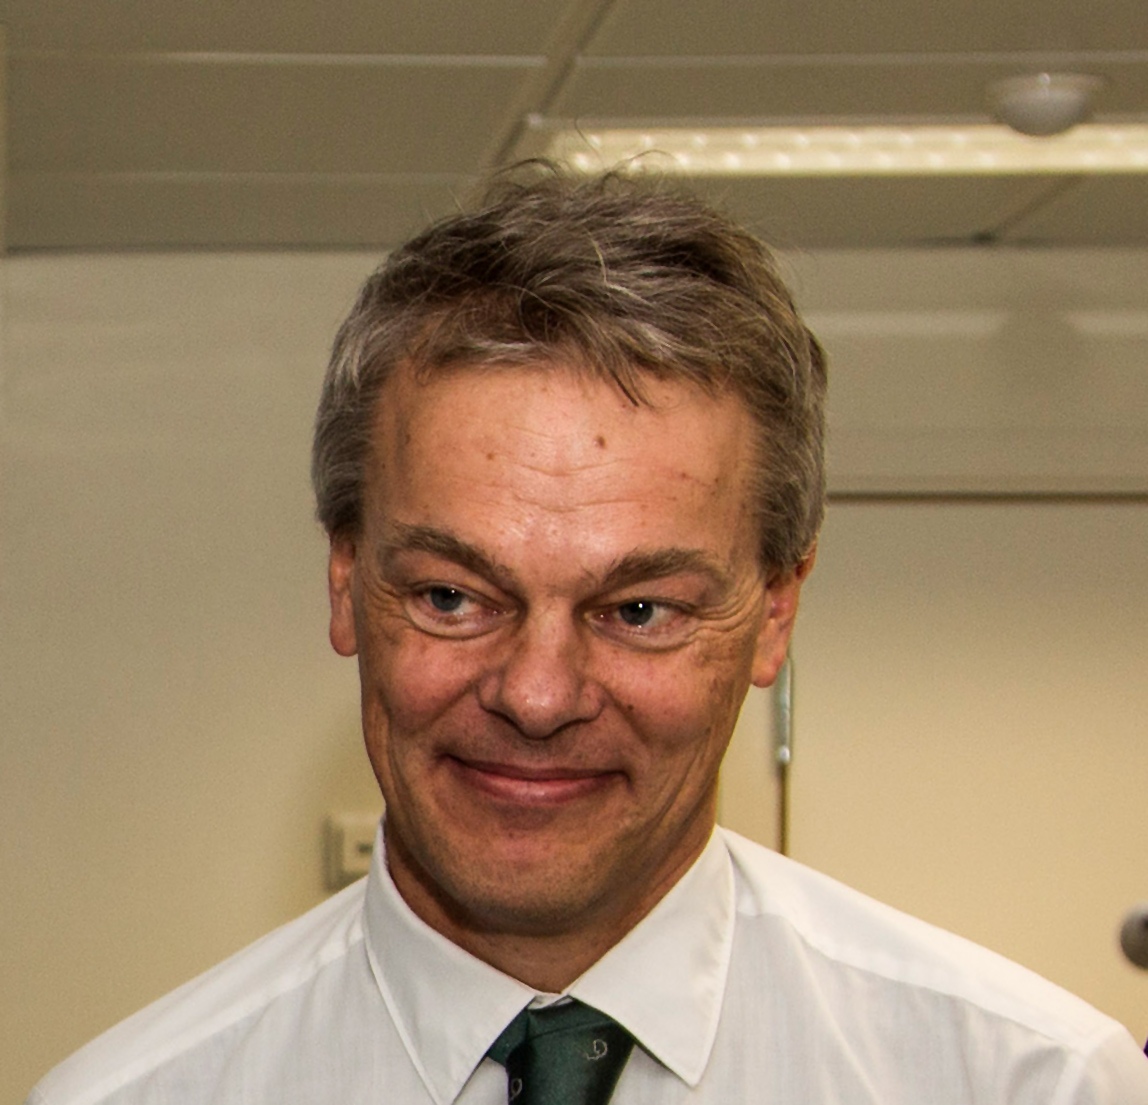 image of Edvard Moser